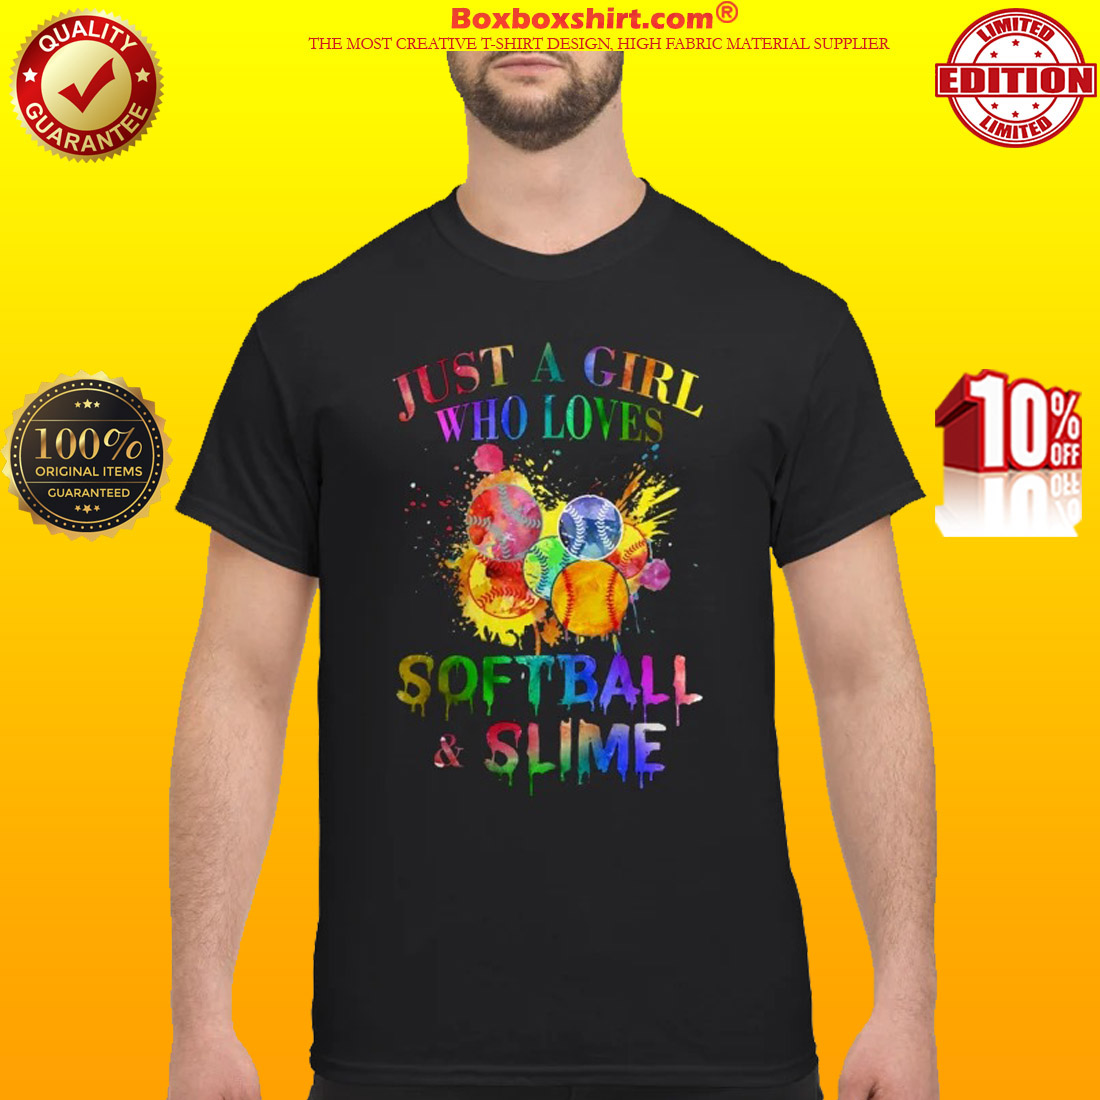 Just a girl who loves softball and slime classic shirt